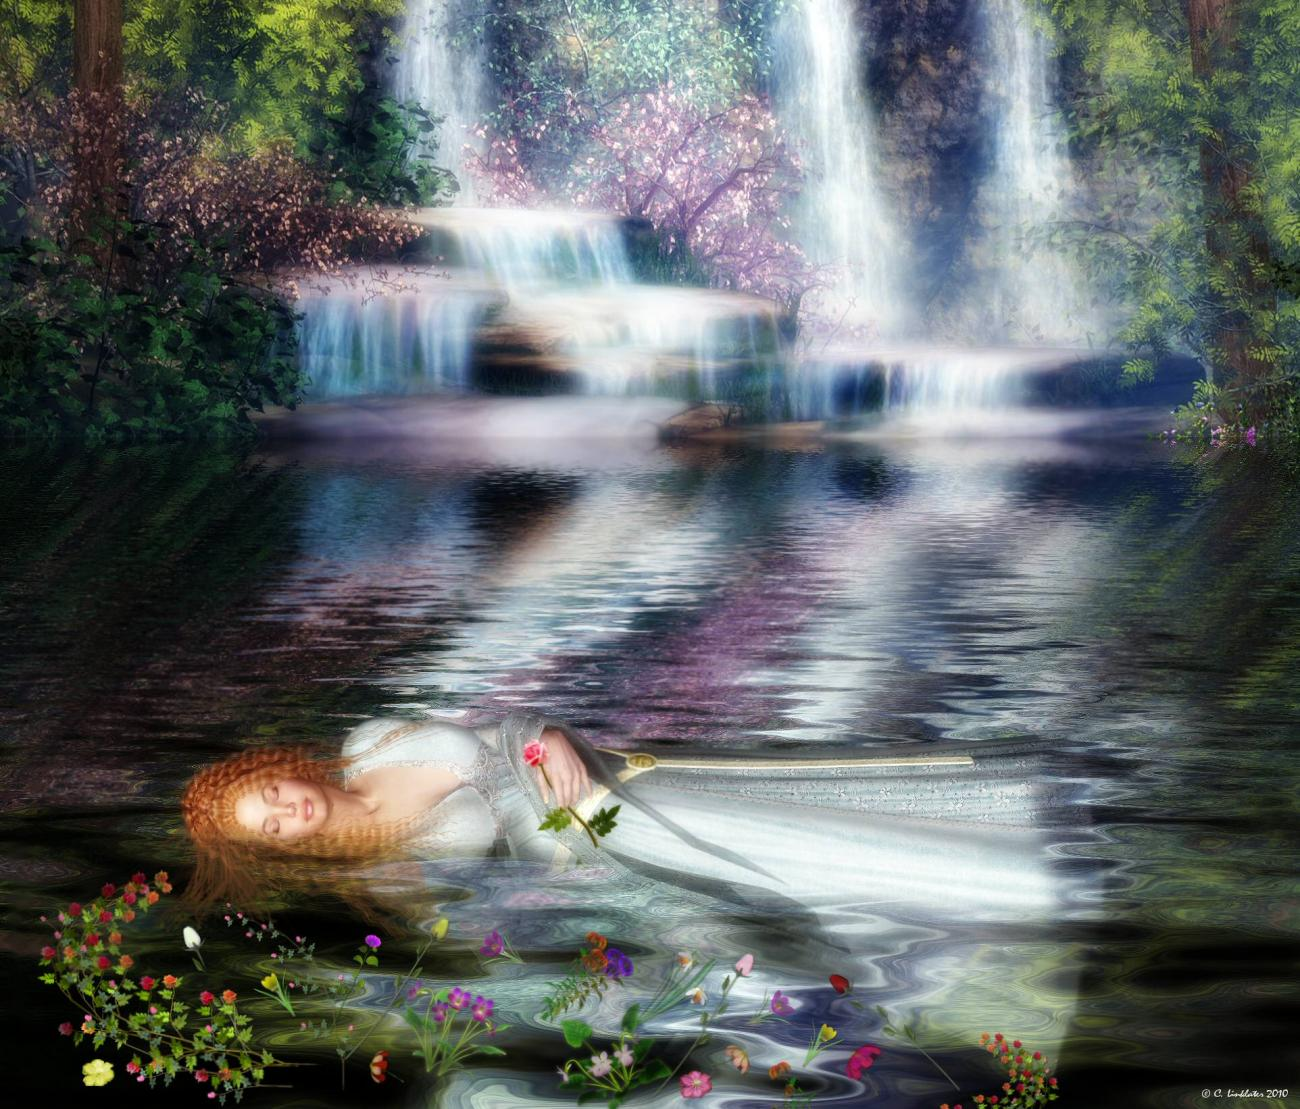 The Last Repose of Ophelia by Adrella